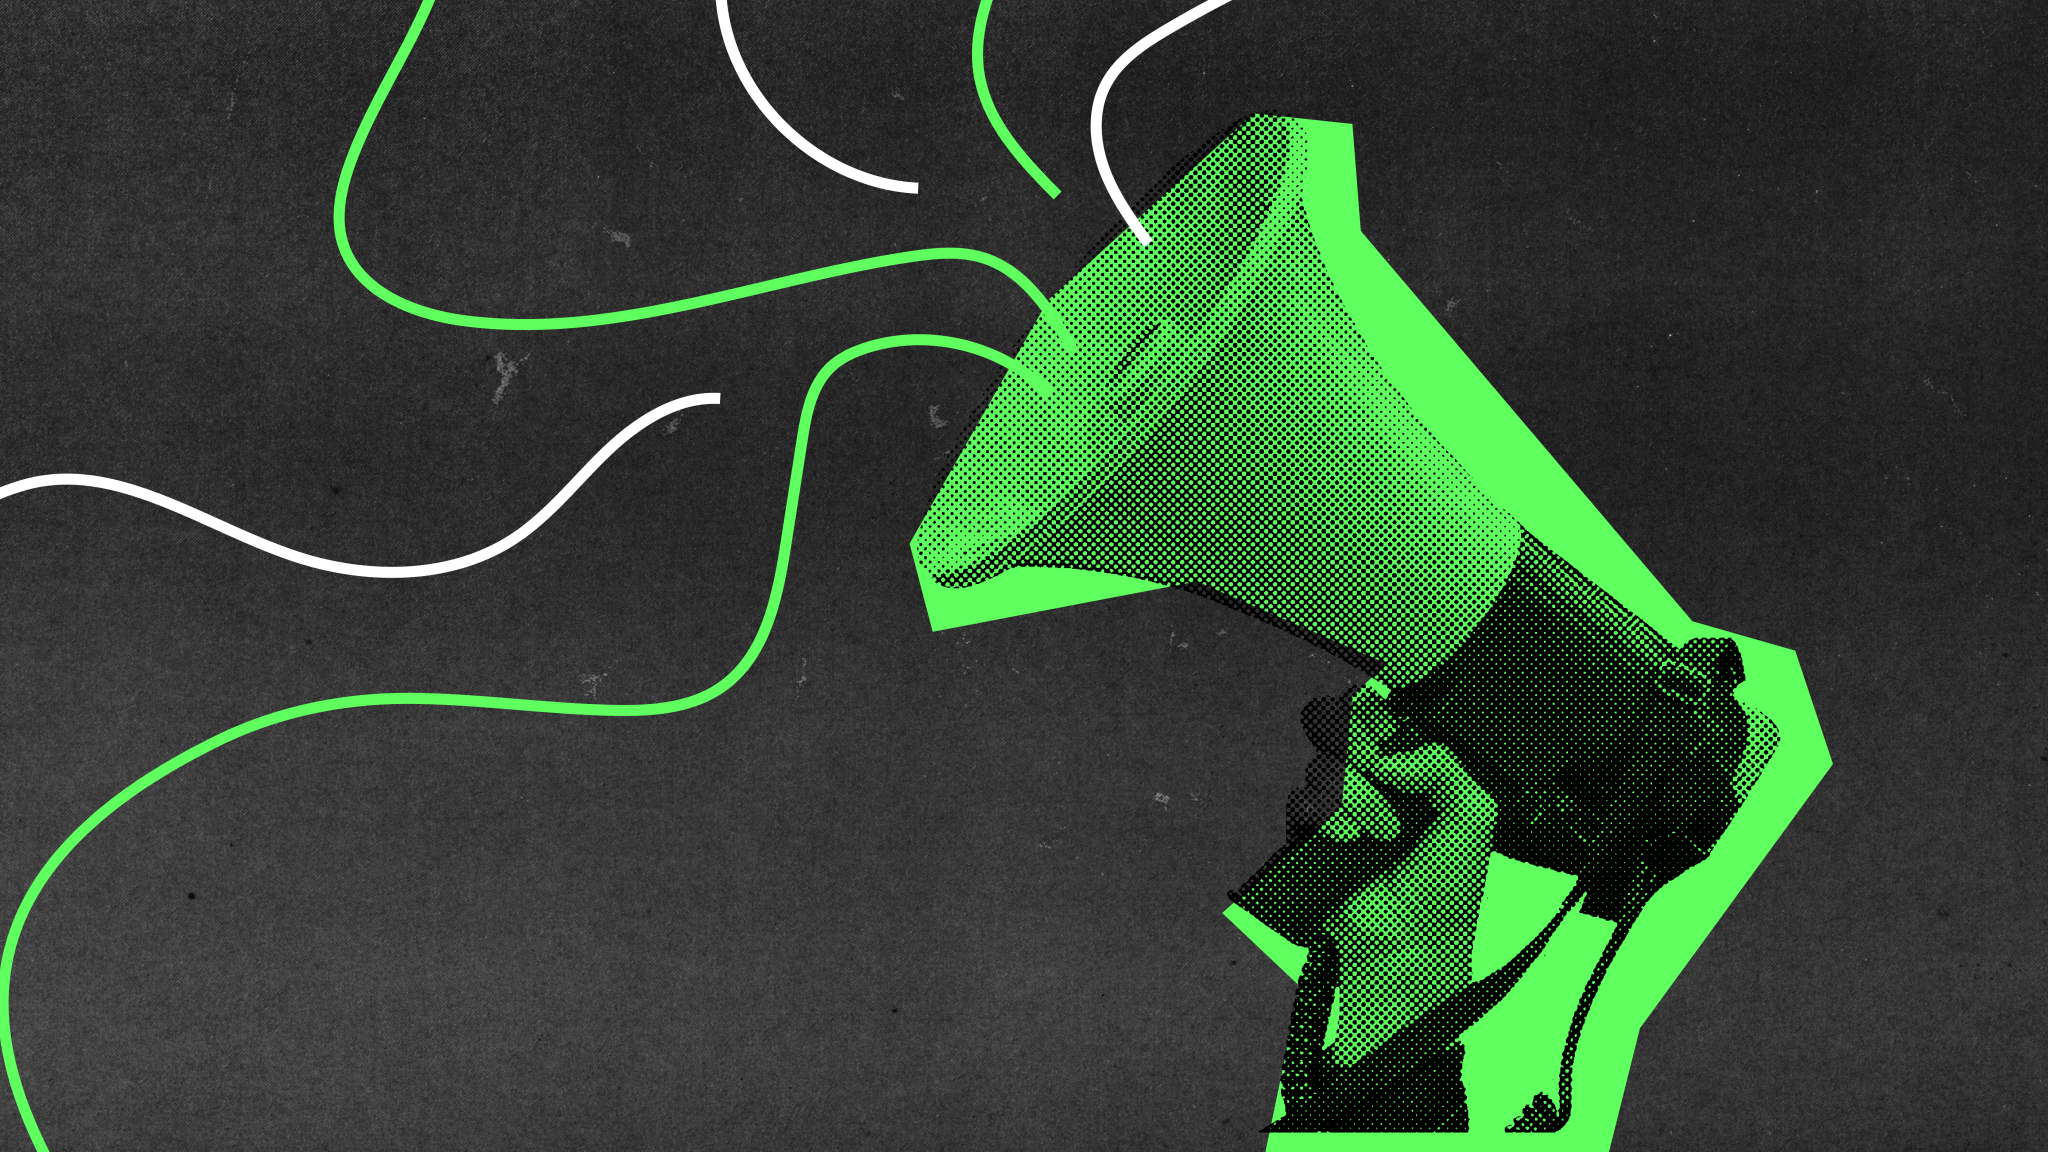 A composite image of a black bitmapped megaphone held defiantly in the air by a hand with neon green offset colour behind. Duotone green and white lines swirl from the speaker on a background of gritty dark photocopier texture